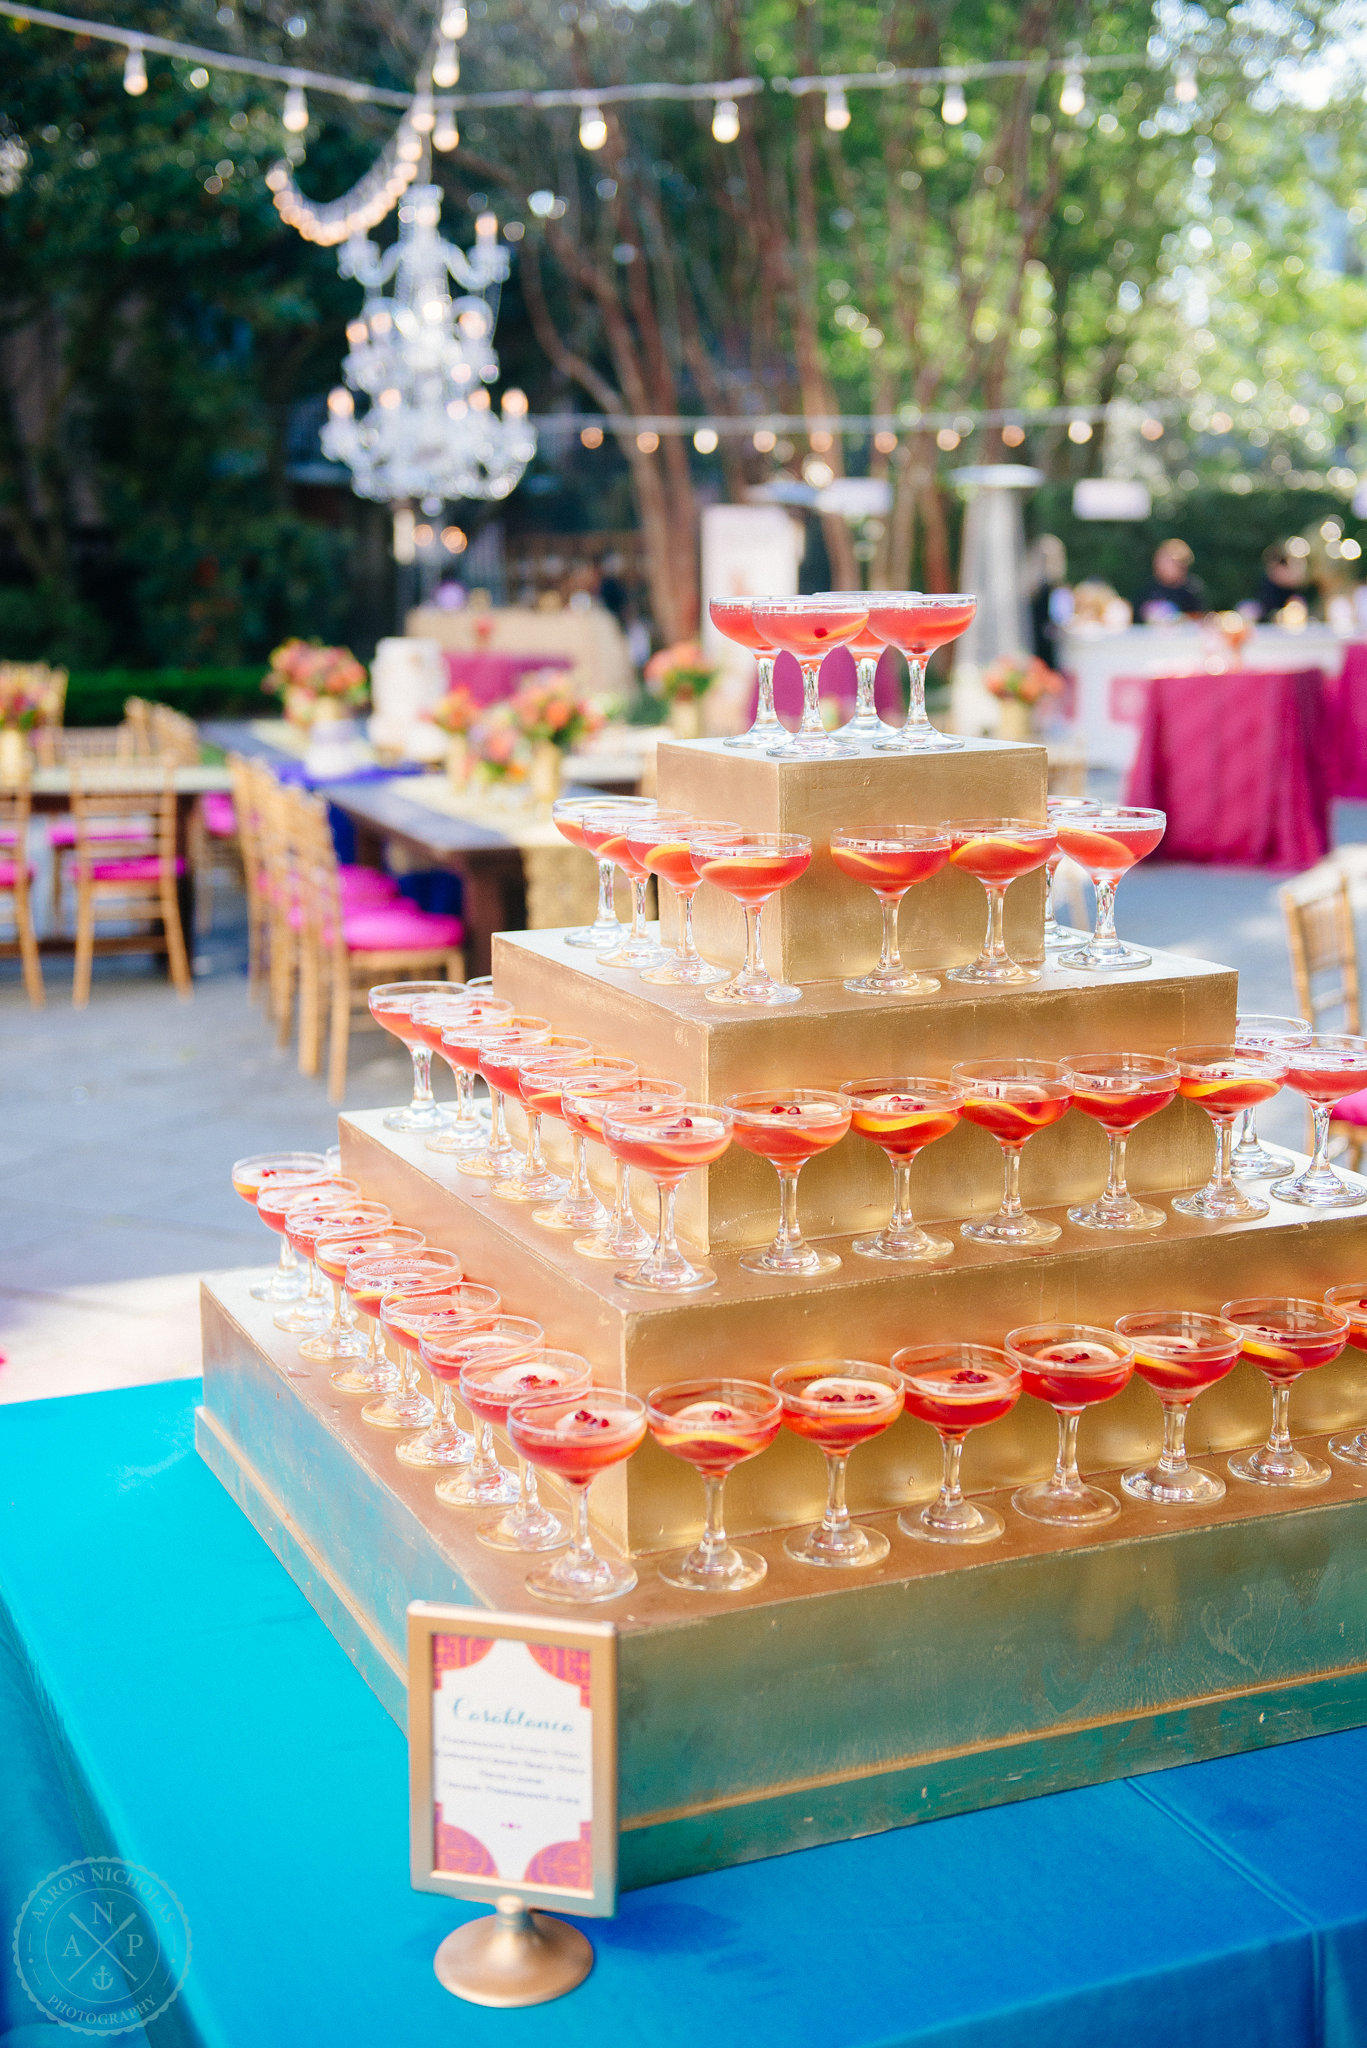 casablanca-style-champange-pyramid-with-sangria-moroccan-inspired-garden-wedding-reception-fuchsia-blue-orange-details